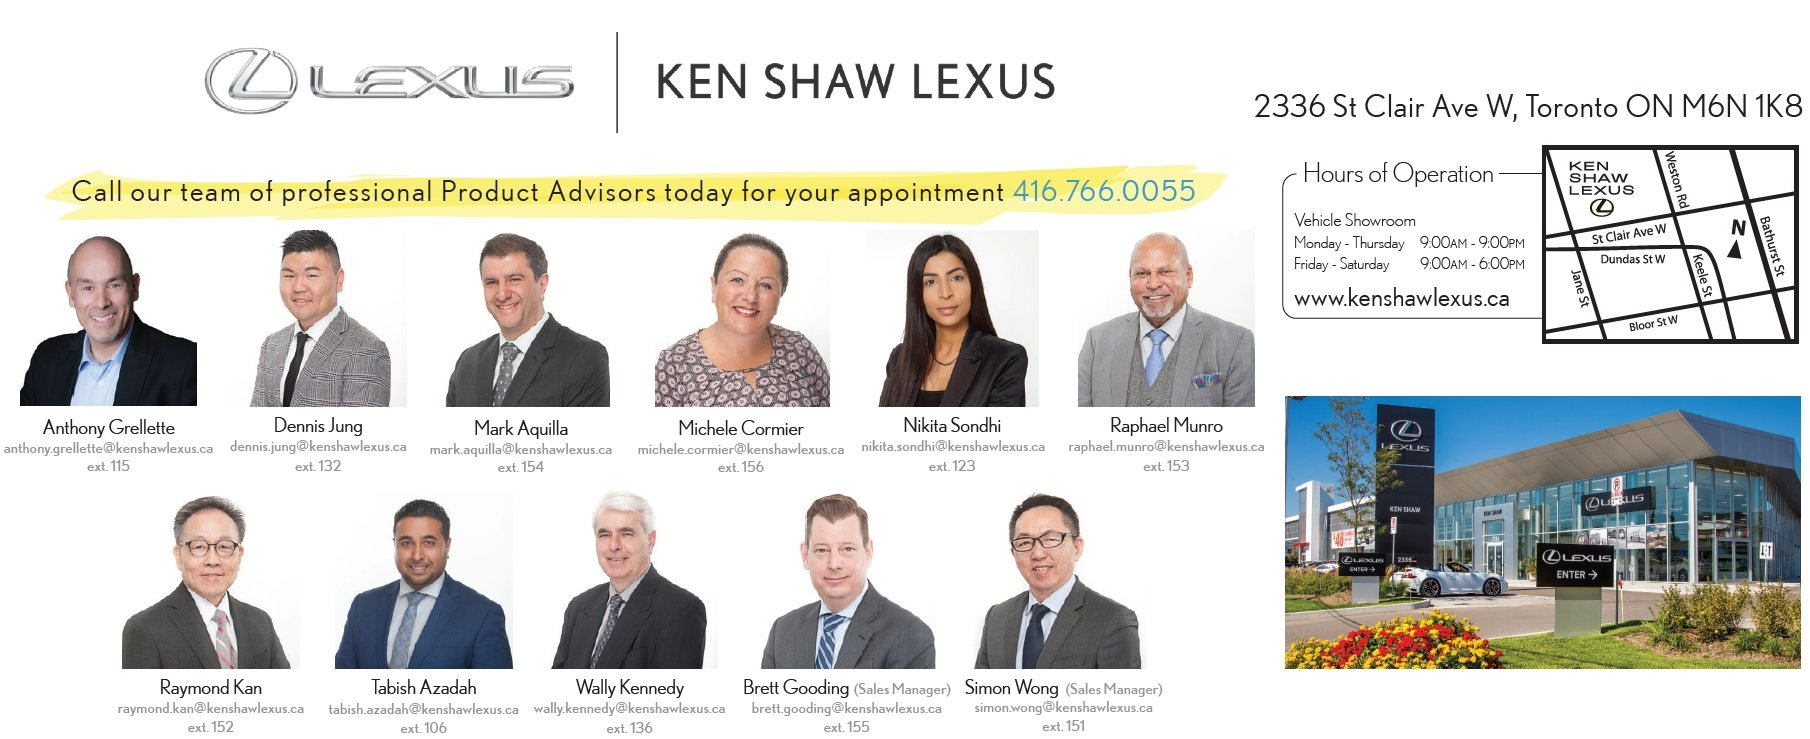 Ken Shaw lexus in toronto sales team